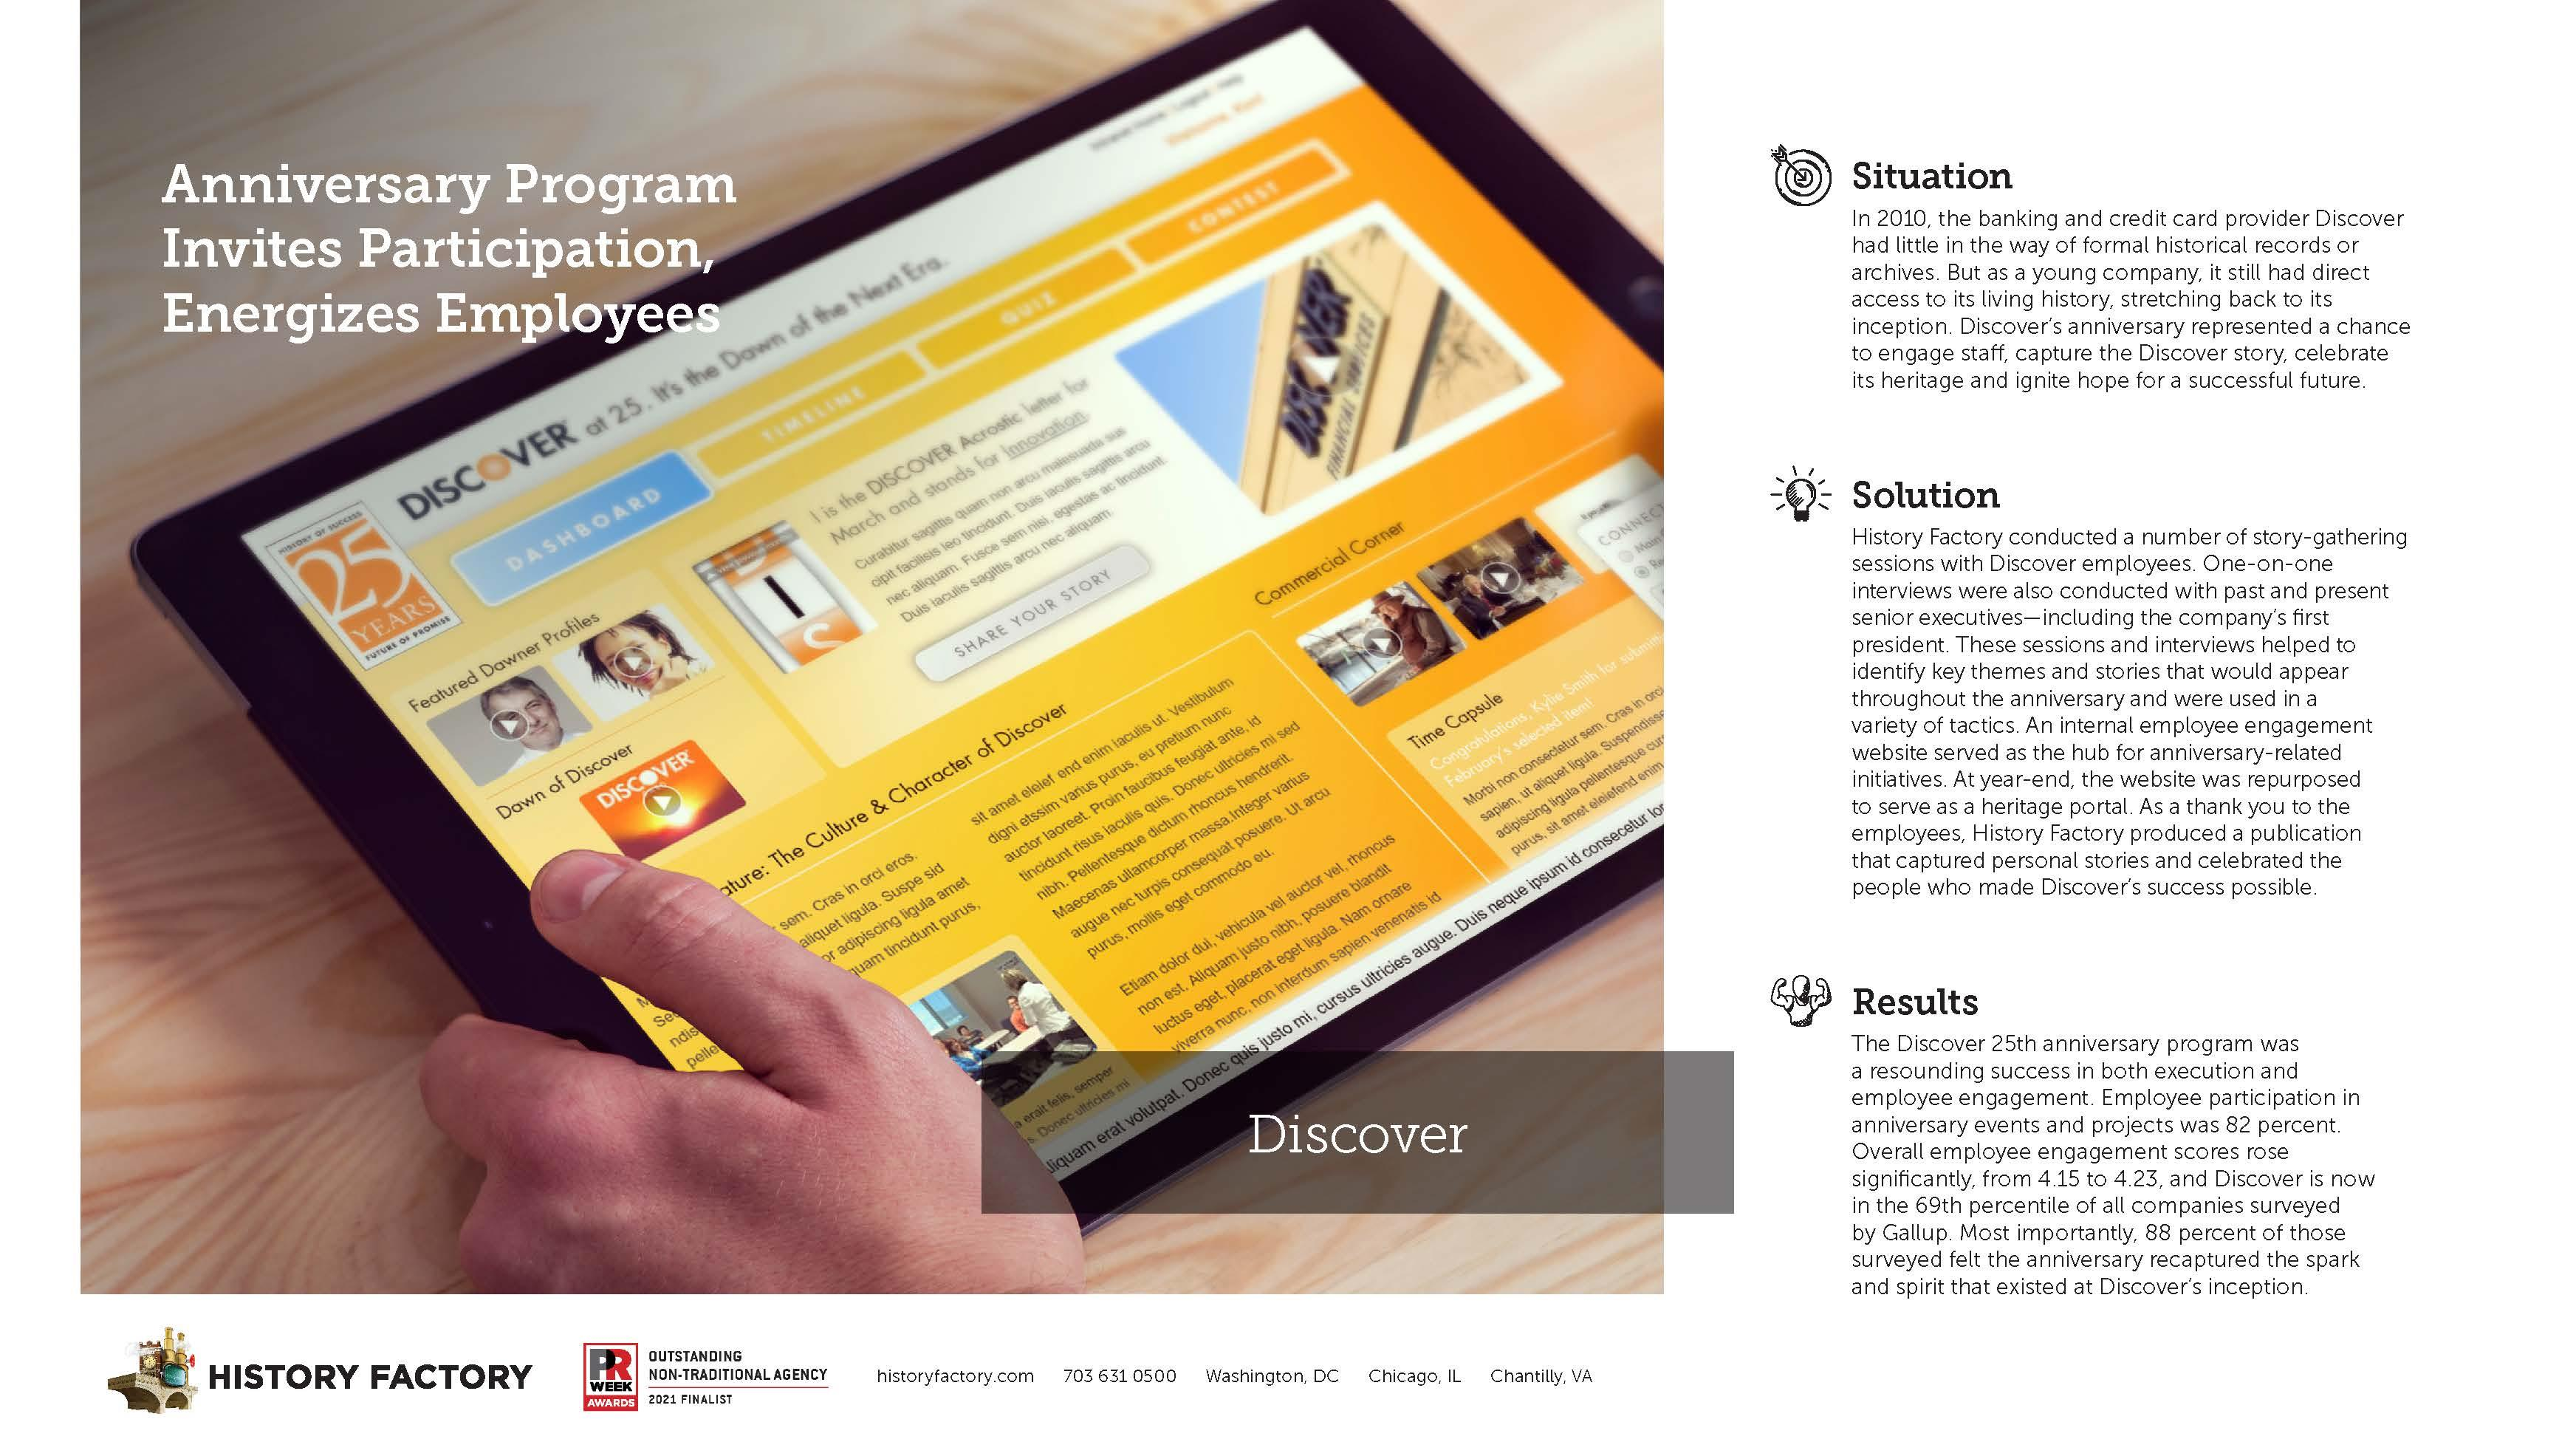 Case Study: Discover